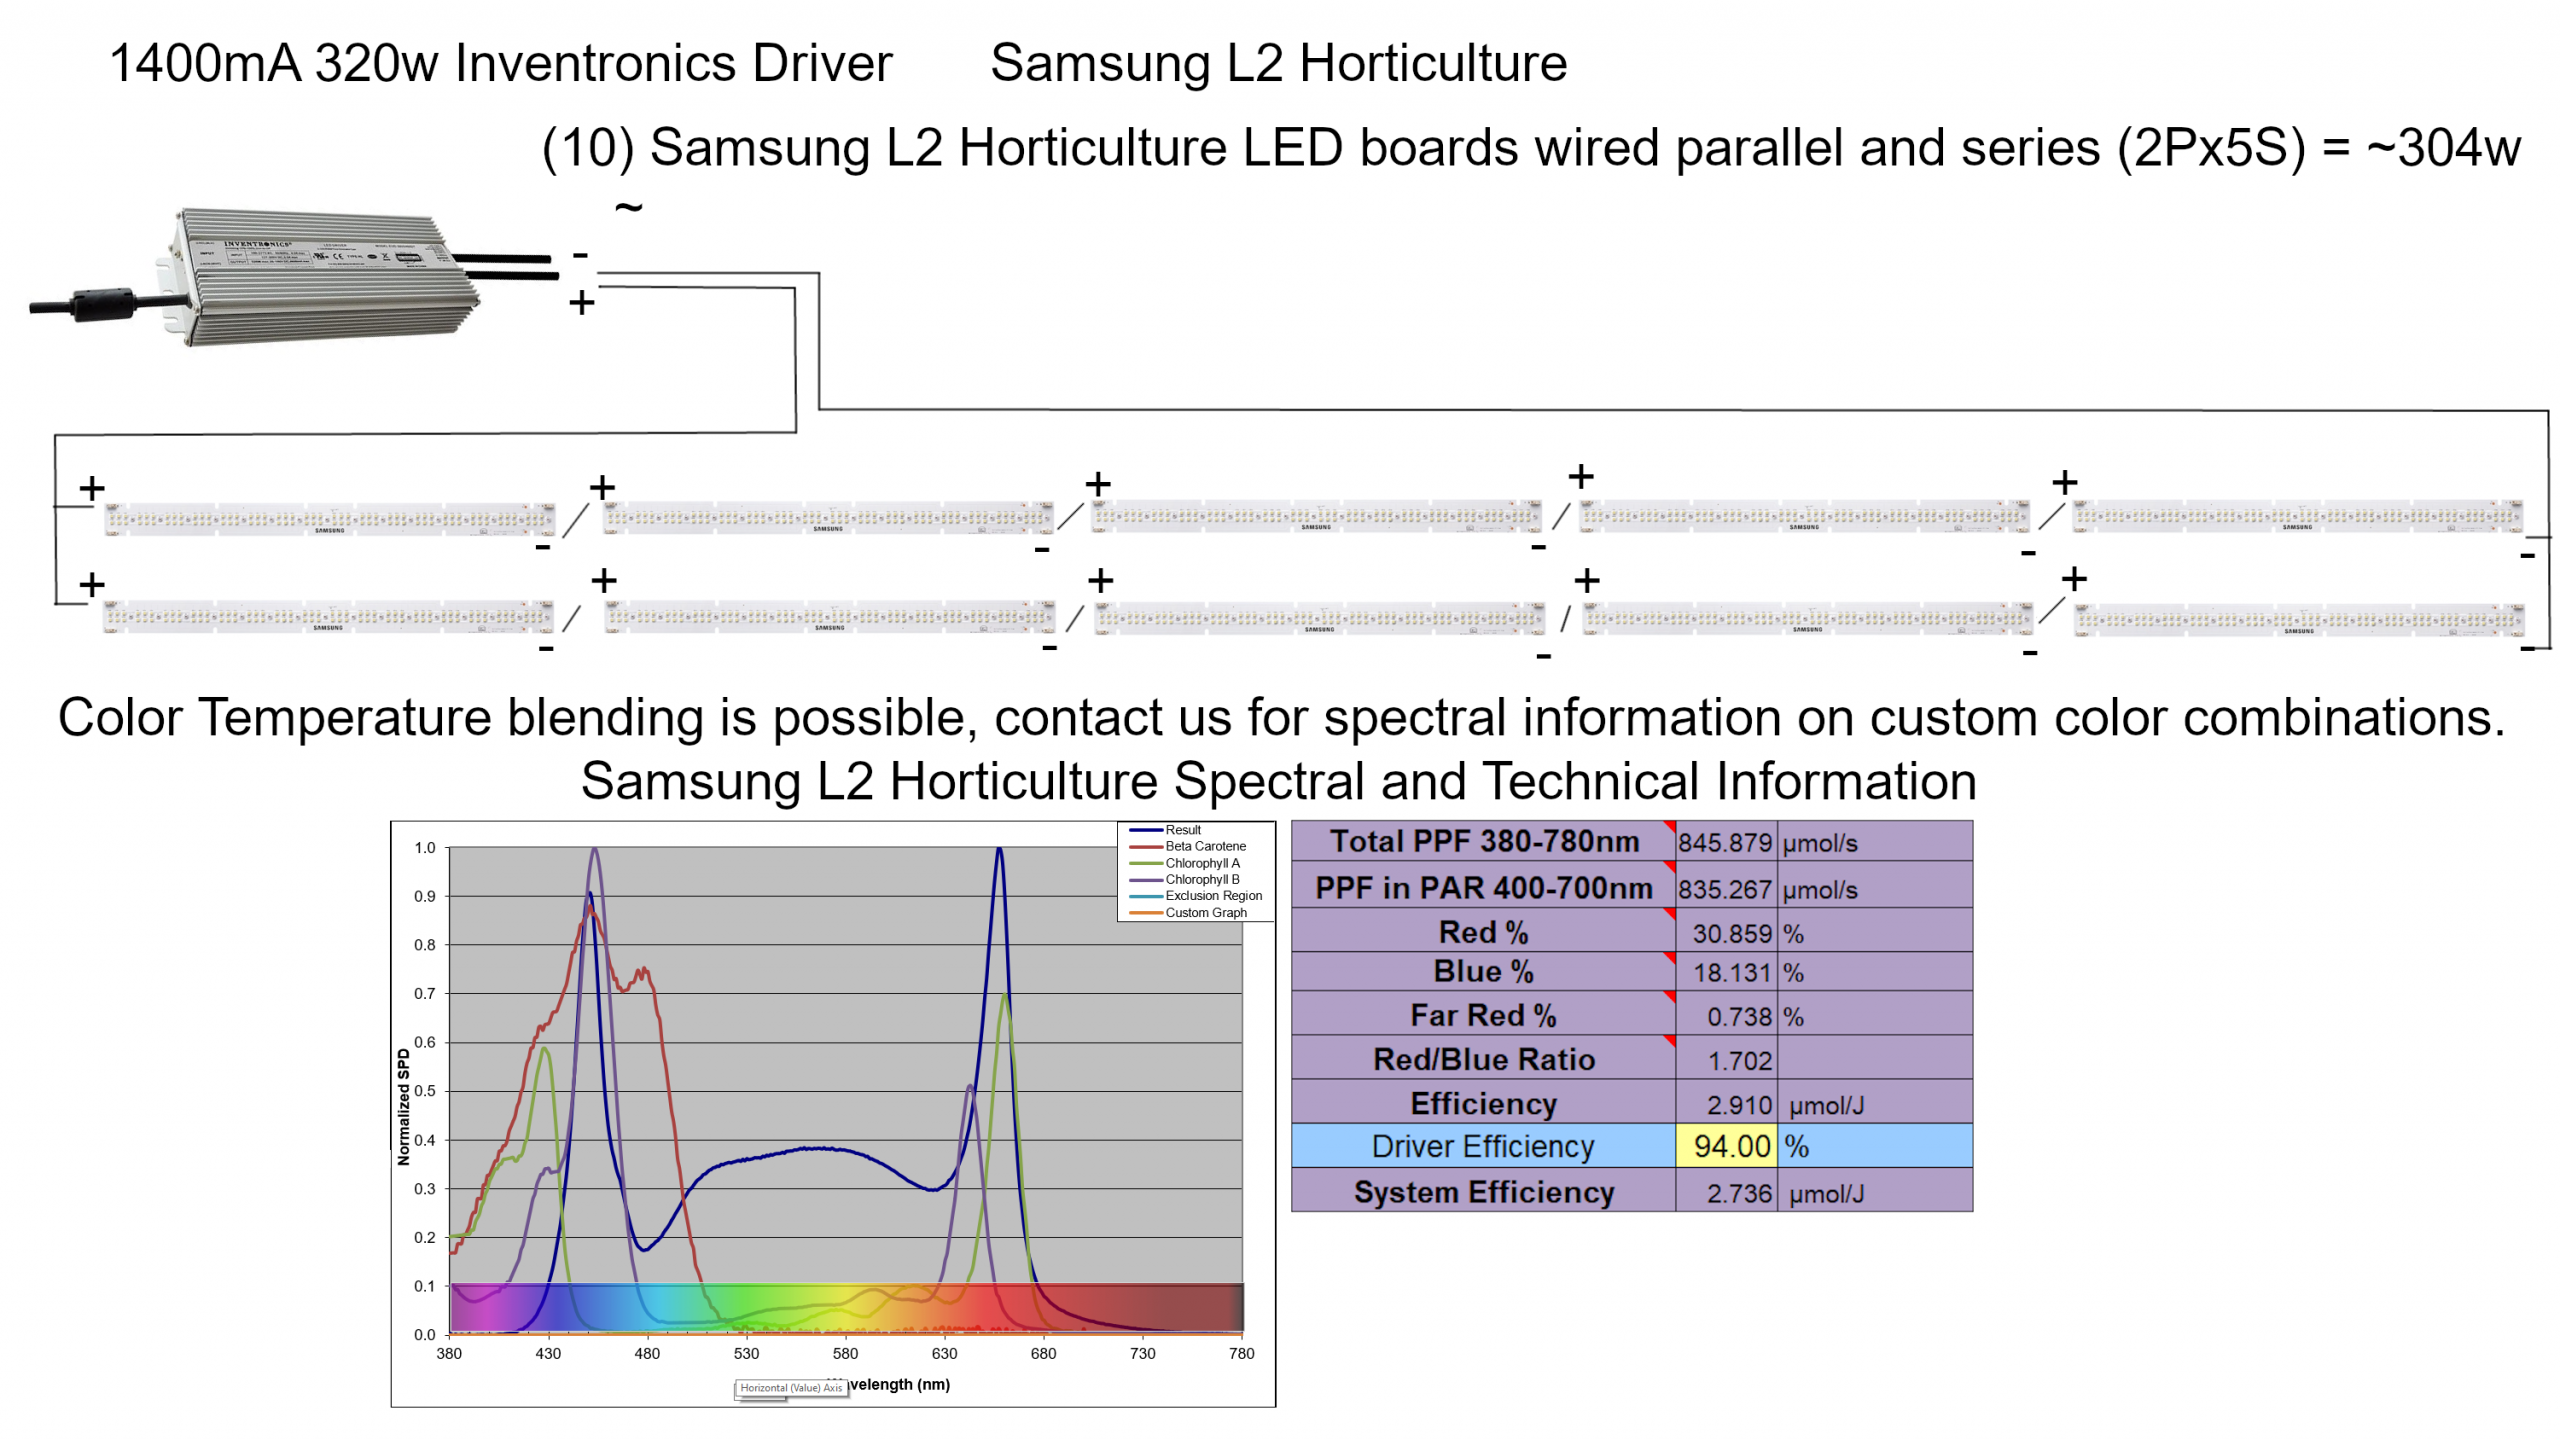 Samsung L2 Horticulture LED Wiring Diagram 320w